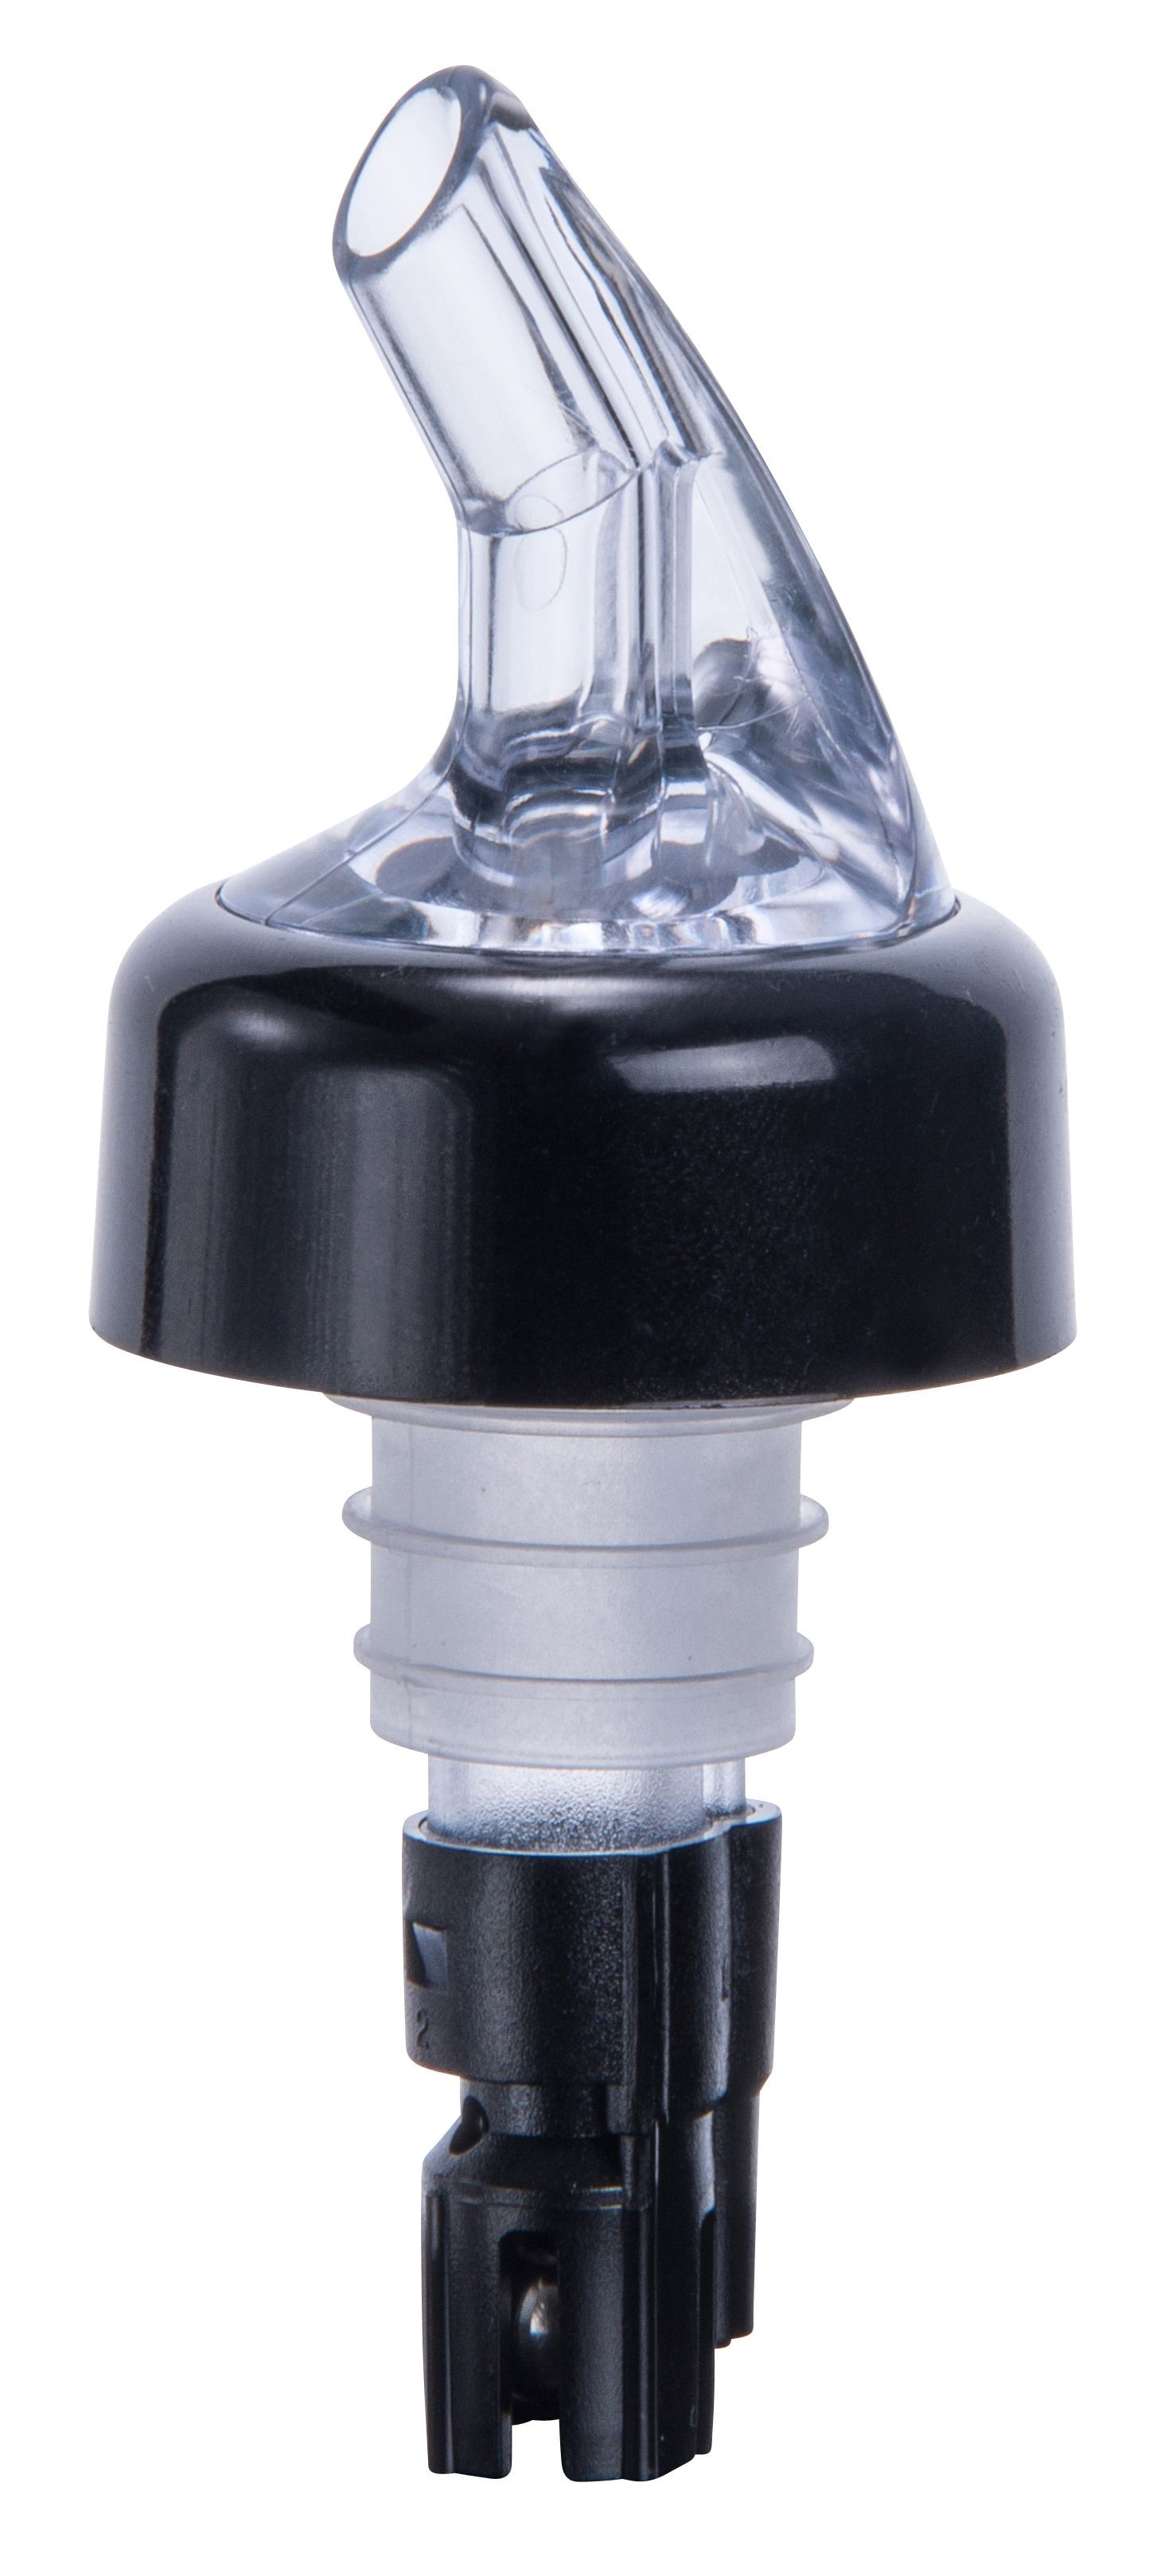 5/8 oz Measuring Pourer, Black Tail, with Collar